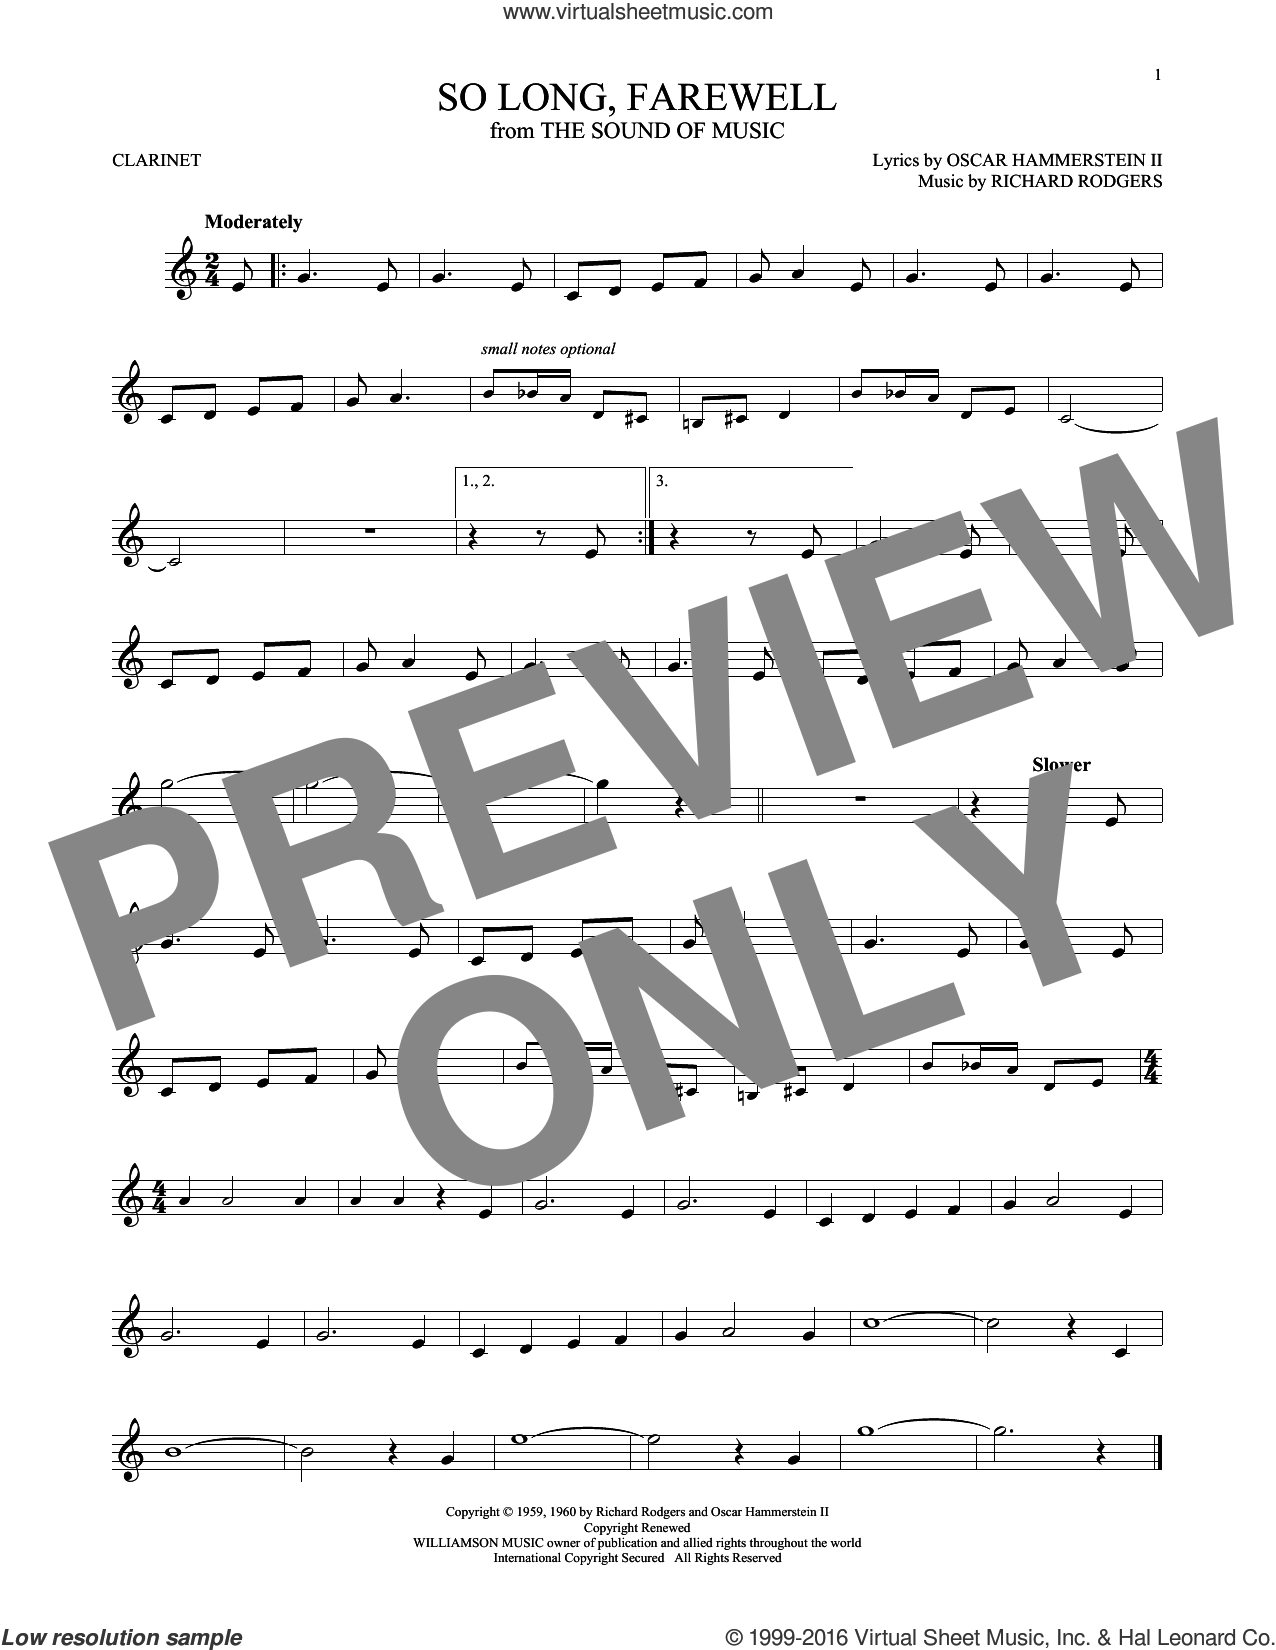 So Long, Farewell sheet music for clarinet solo by Rodgers & Hammerstein, Oscar II Hammerstein and Richard Rodgers, intermediate skill level